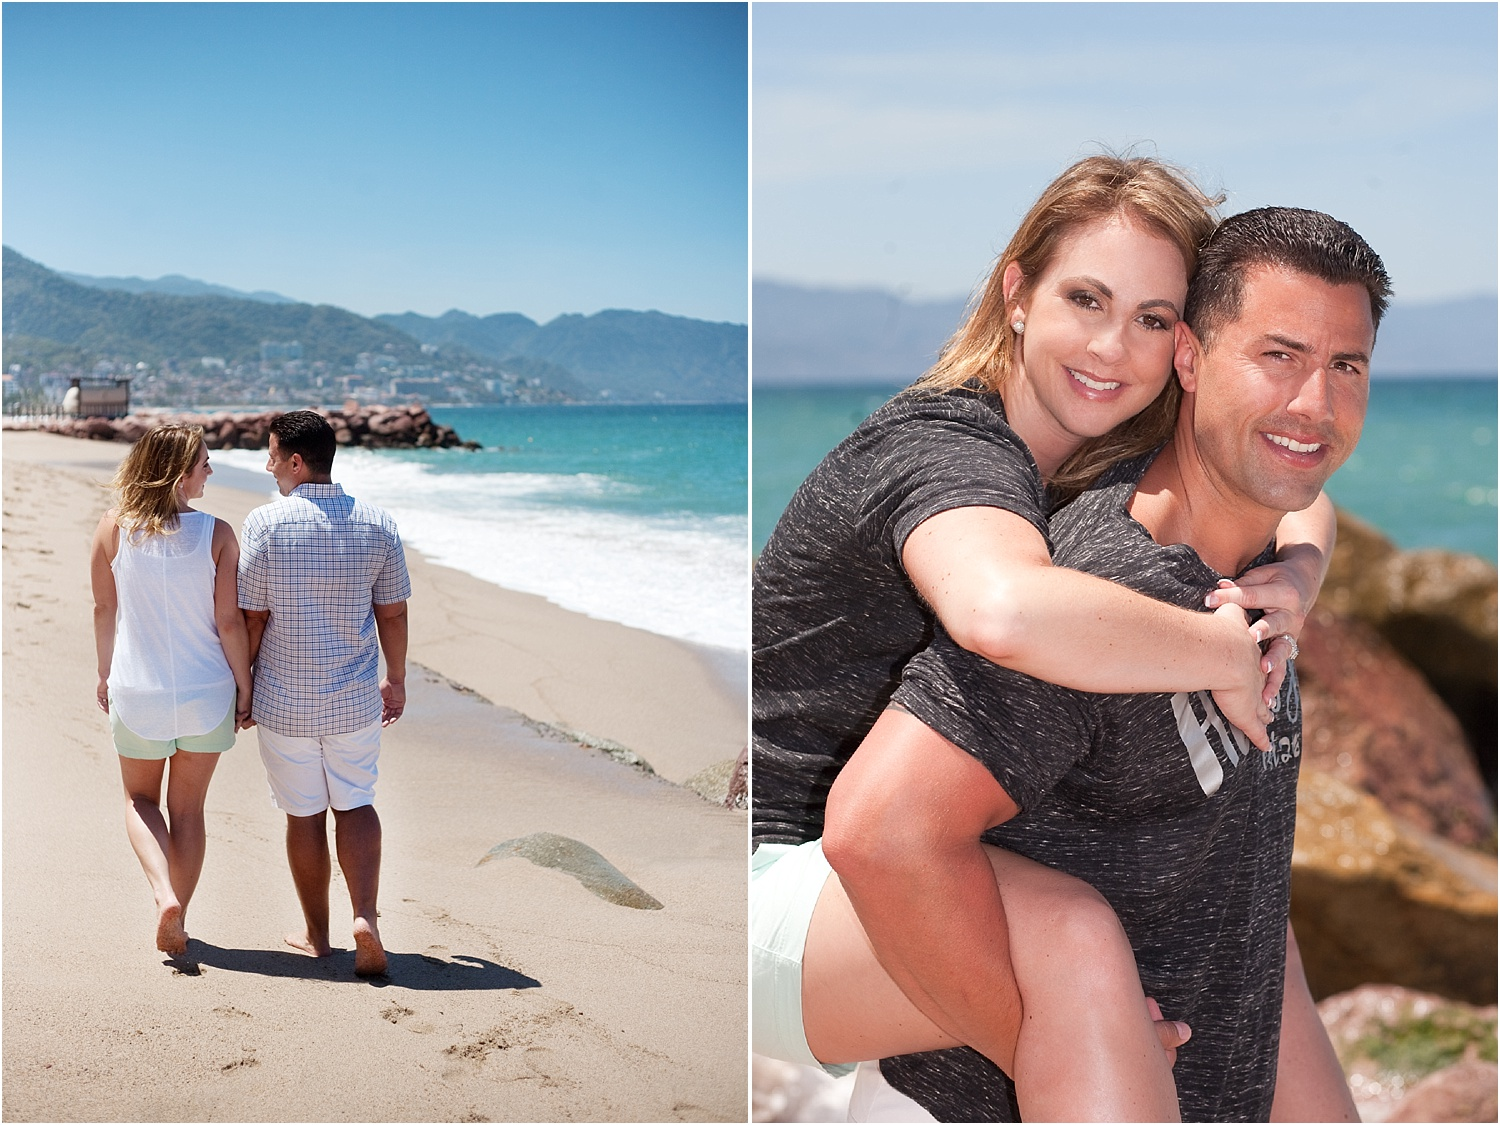 couple on the beach - How to do Portrait photography in Bright Midday Sun.